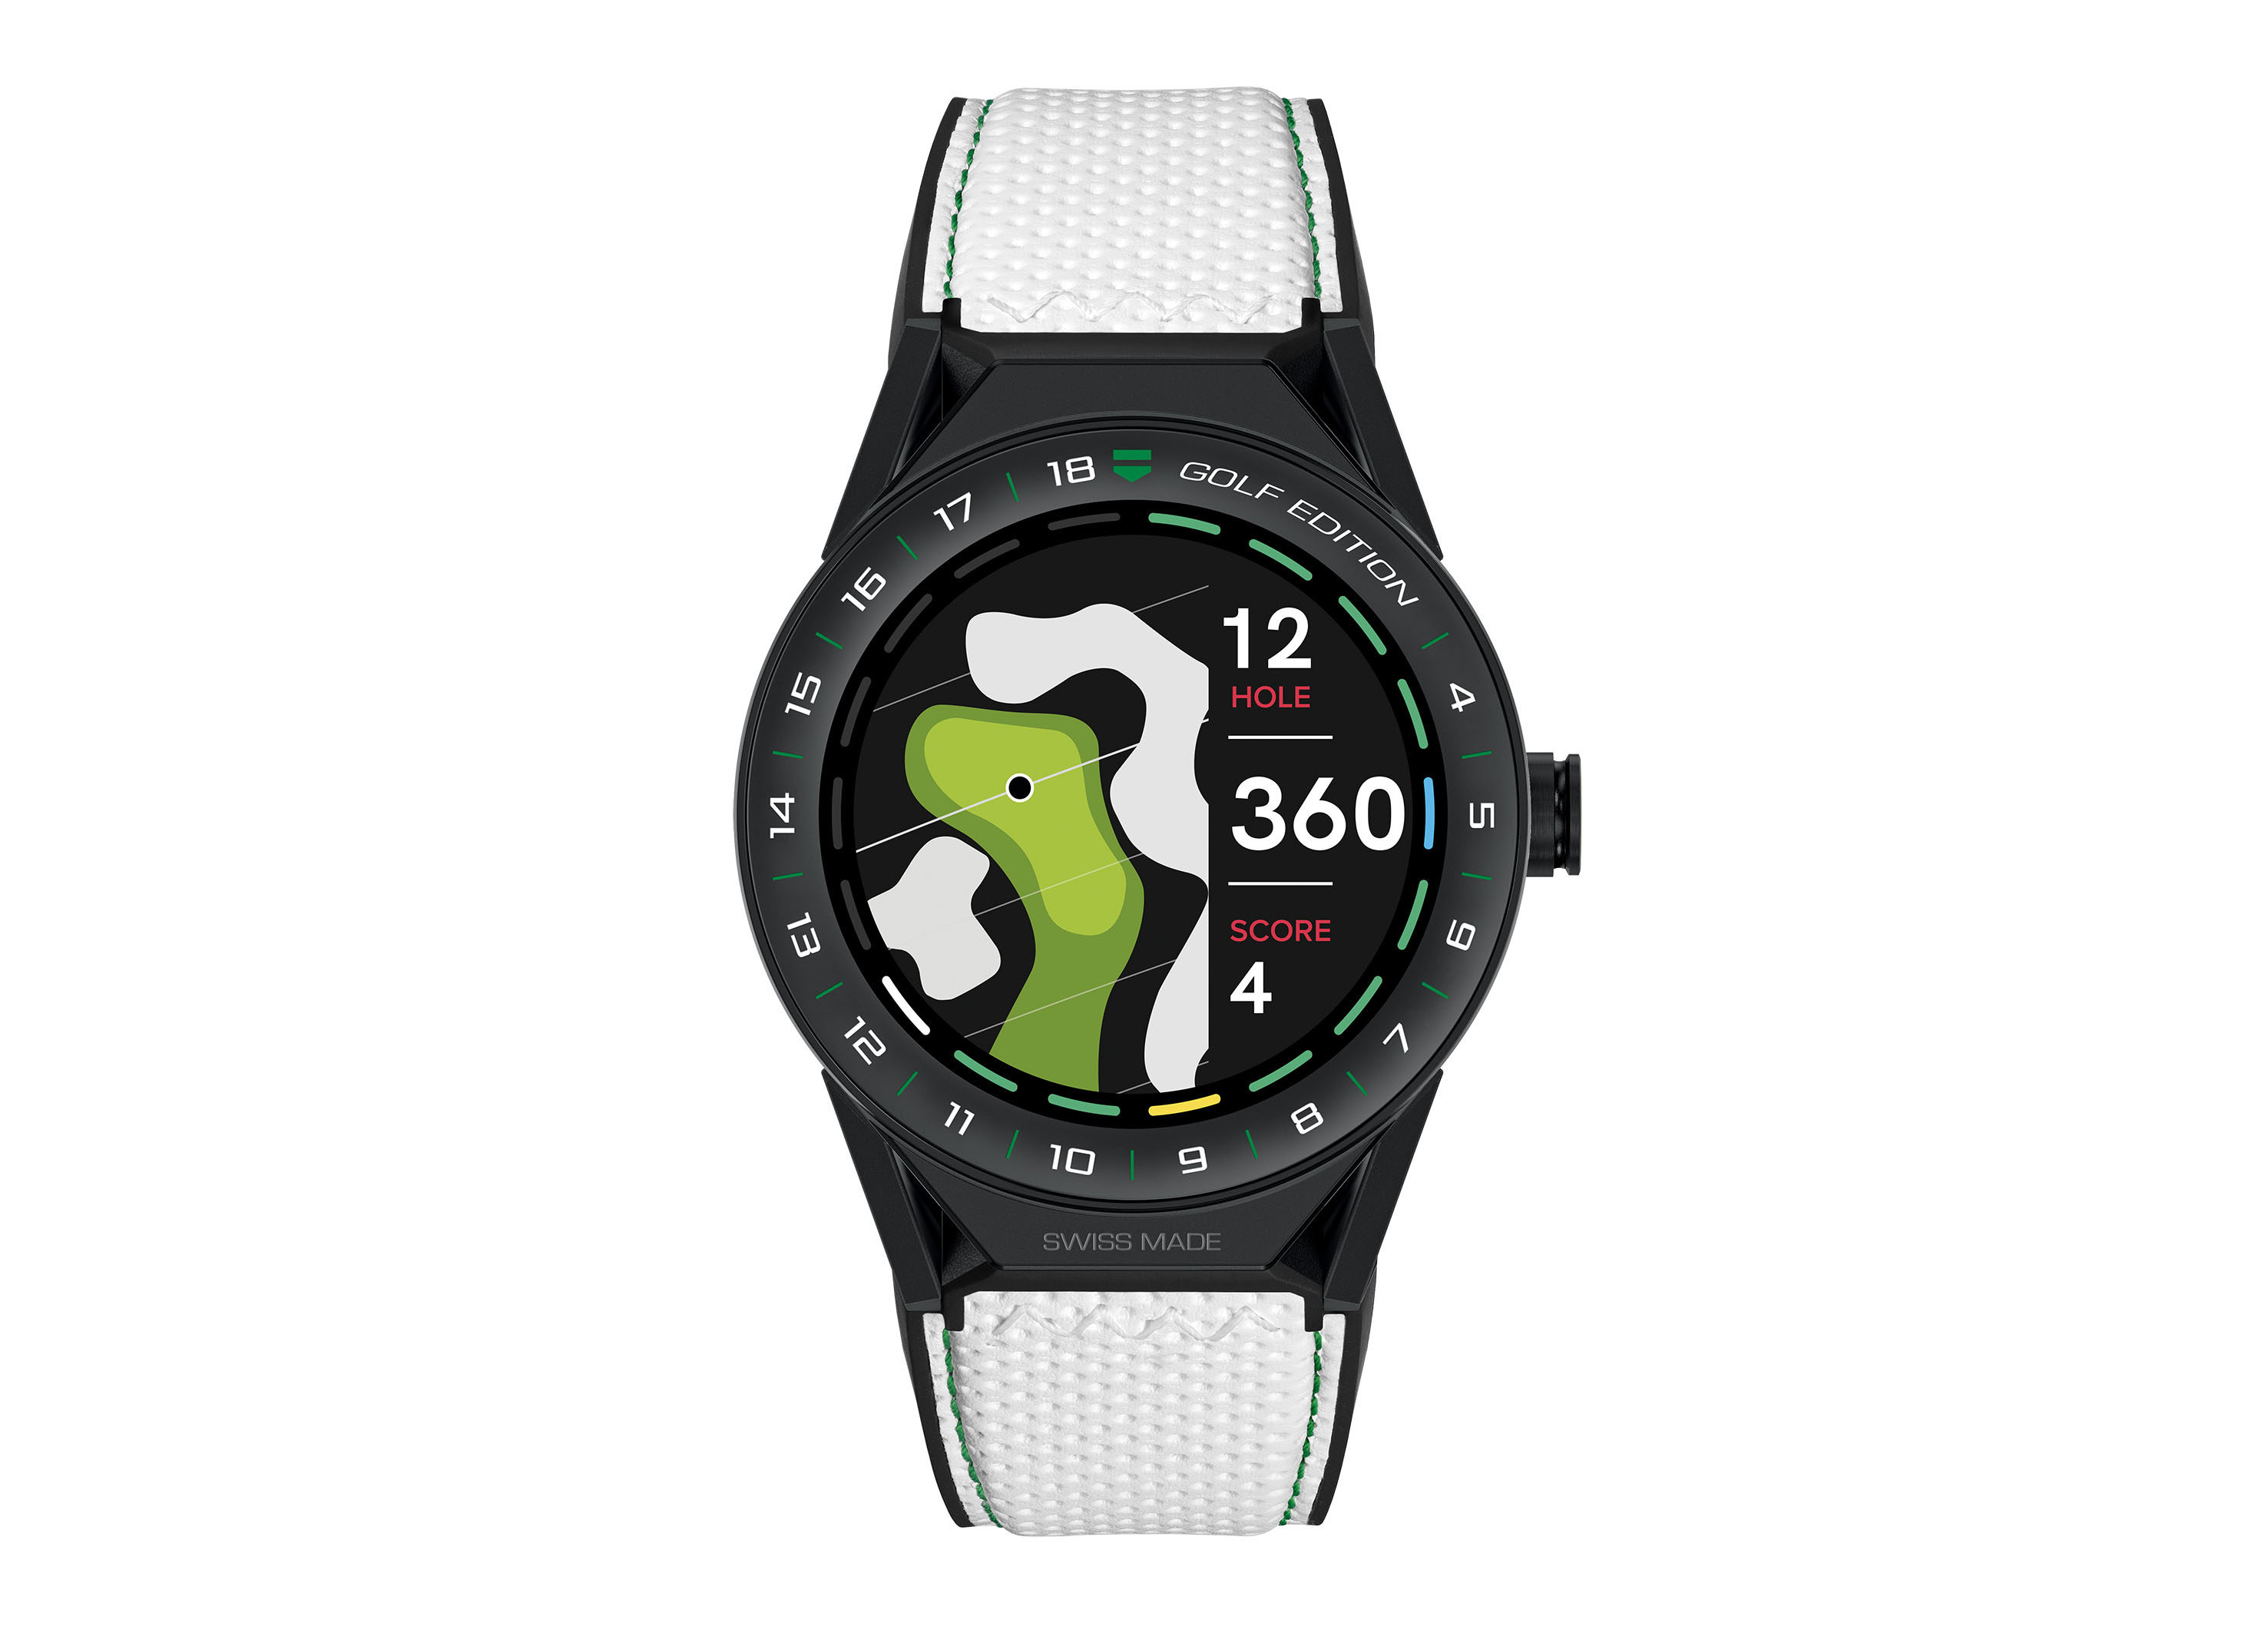 Tag Heuer Golf Edition Watch